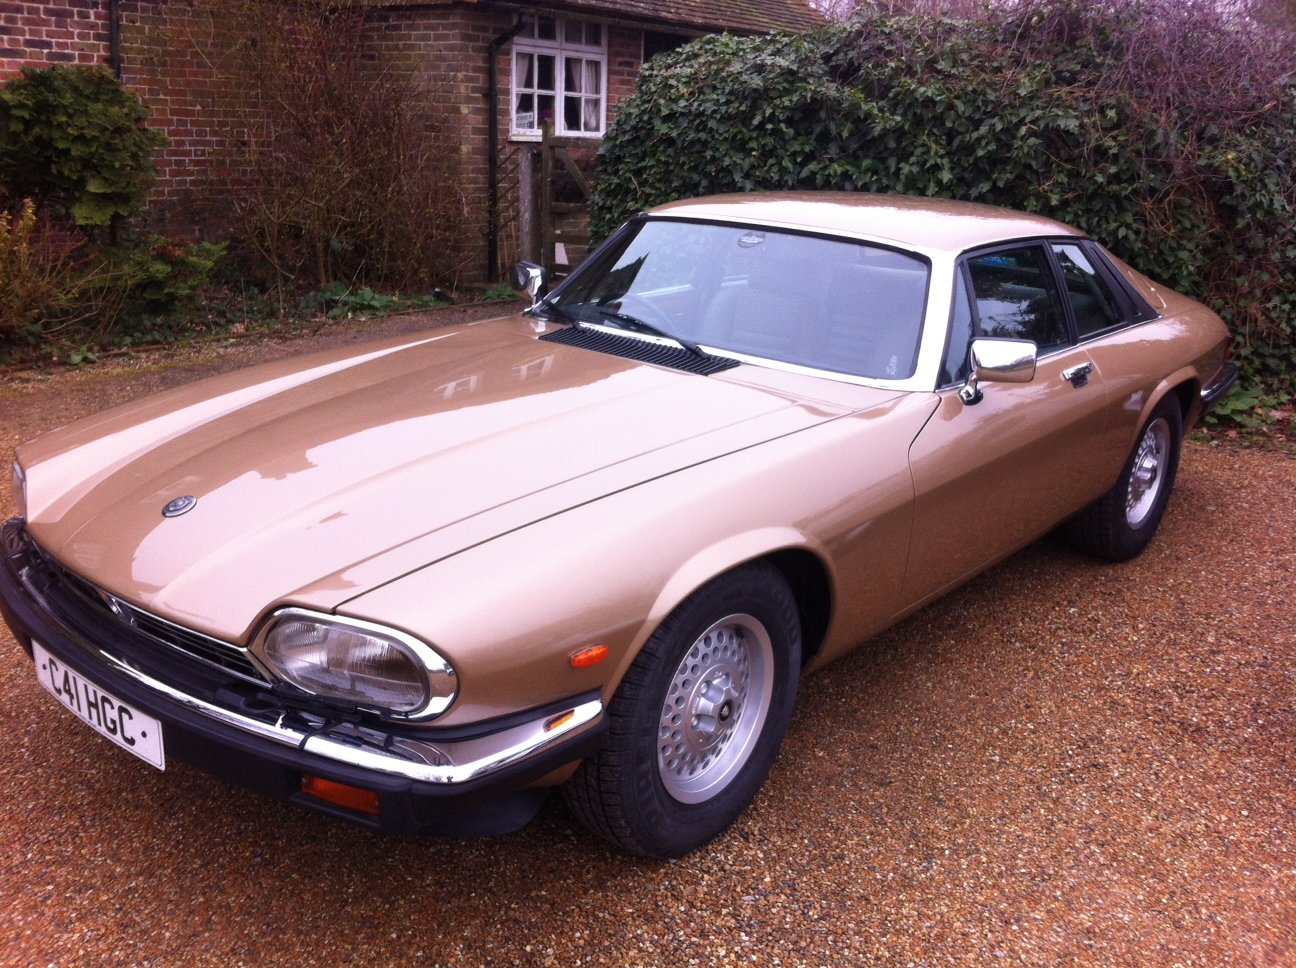 1985 Jaguar XJS 3.6 Five Speed Manual. 27,000 Miles. For Sale (picture 2 of 6)